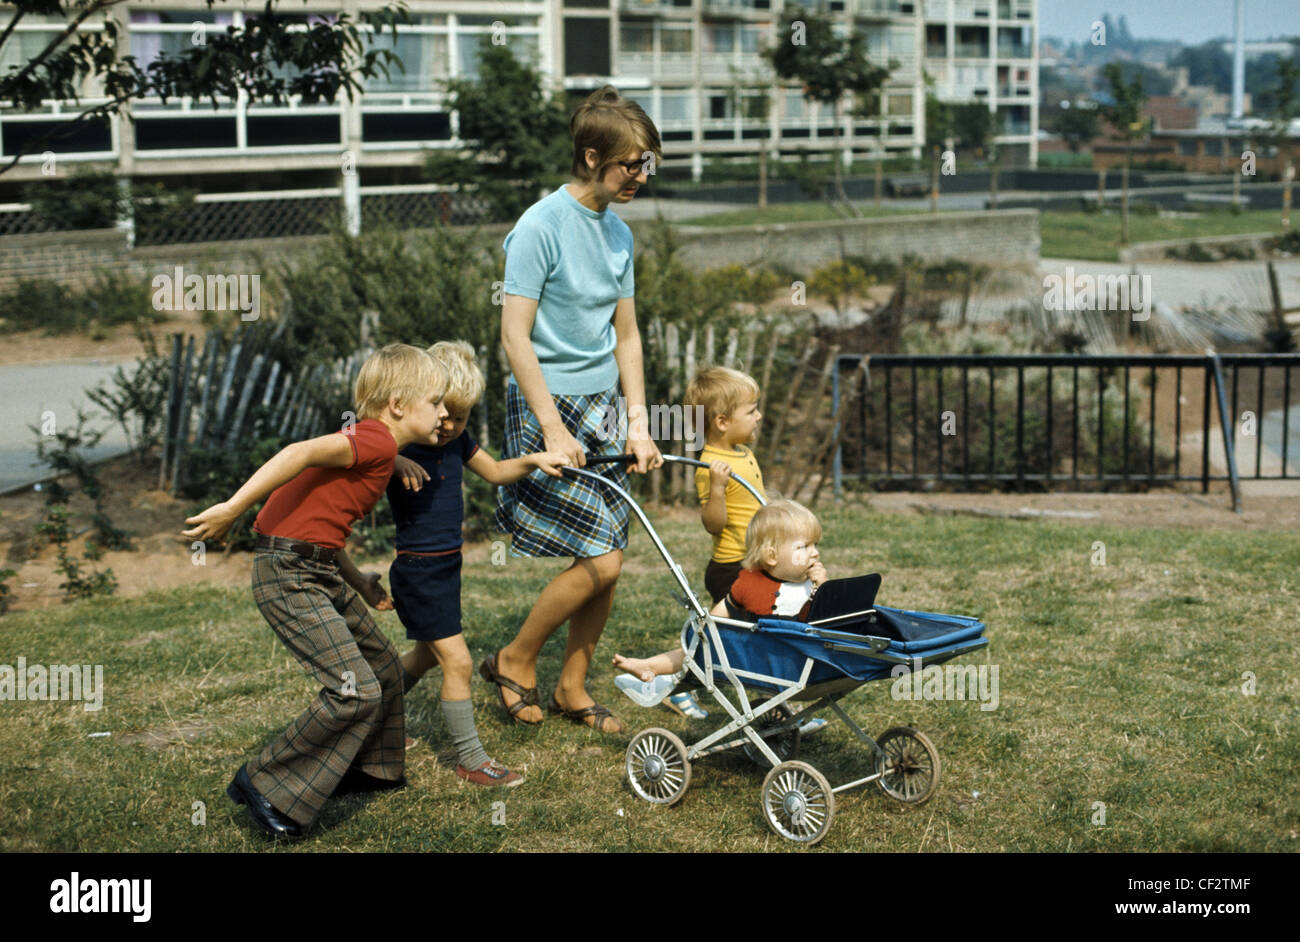 1960's image of mother out and about with children - Stock Image